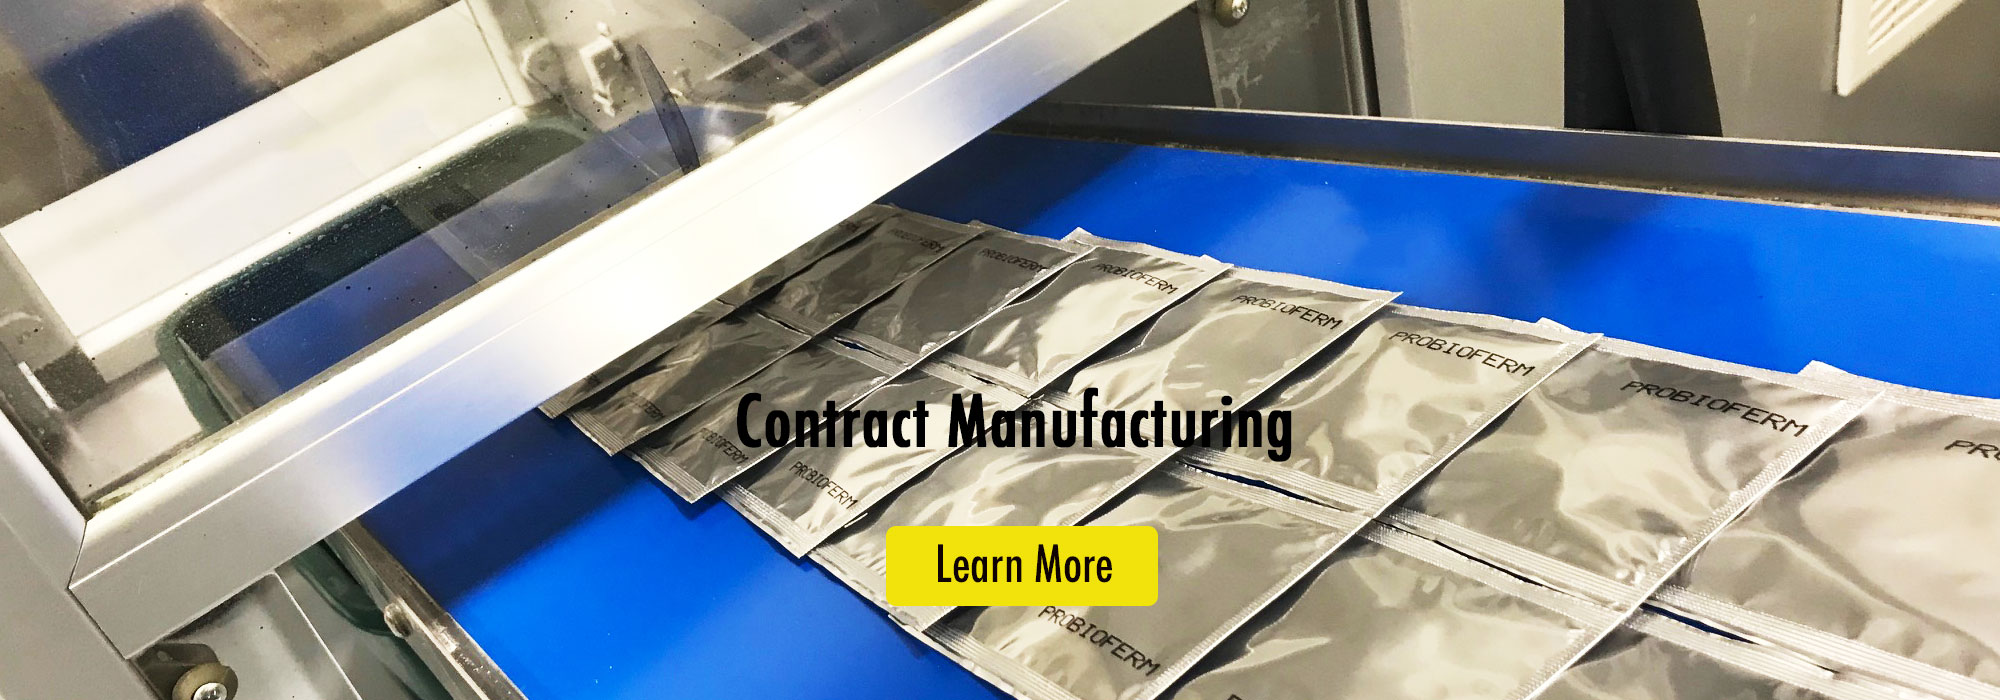 ProbioFerm Contract Manufacturing